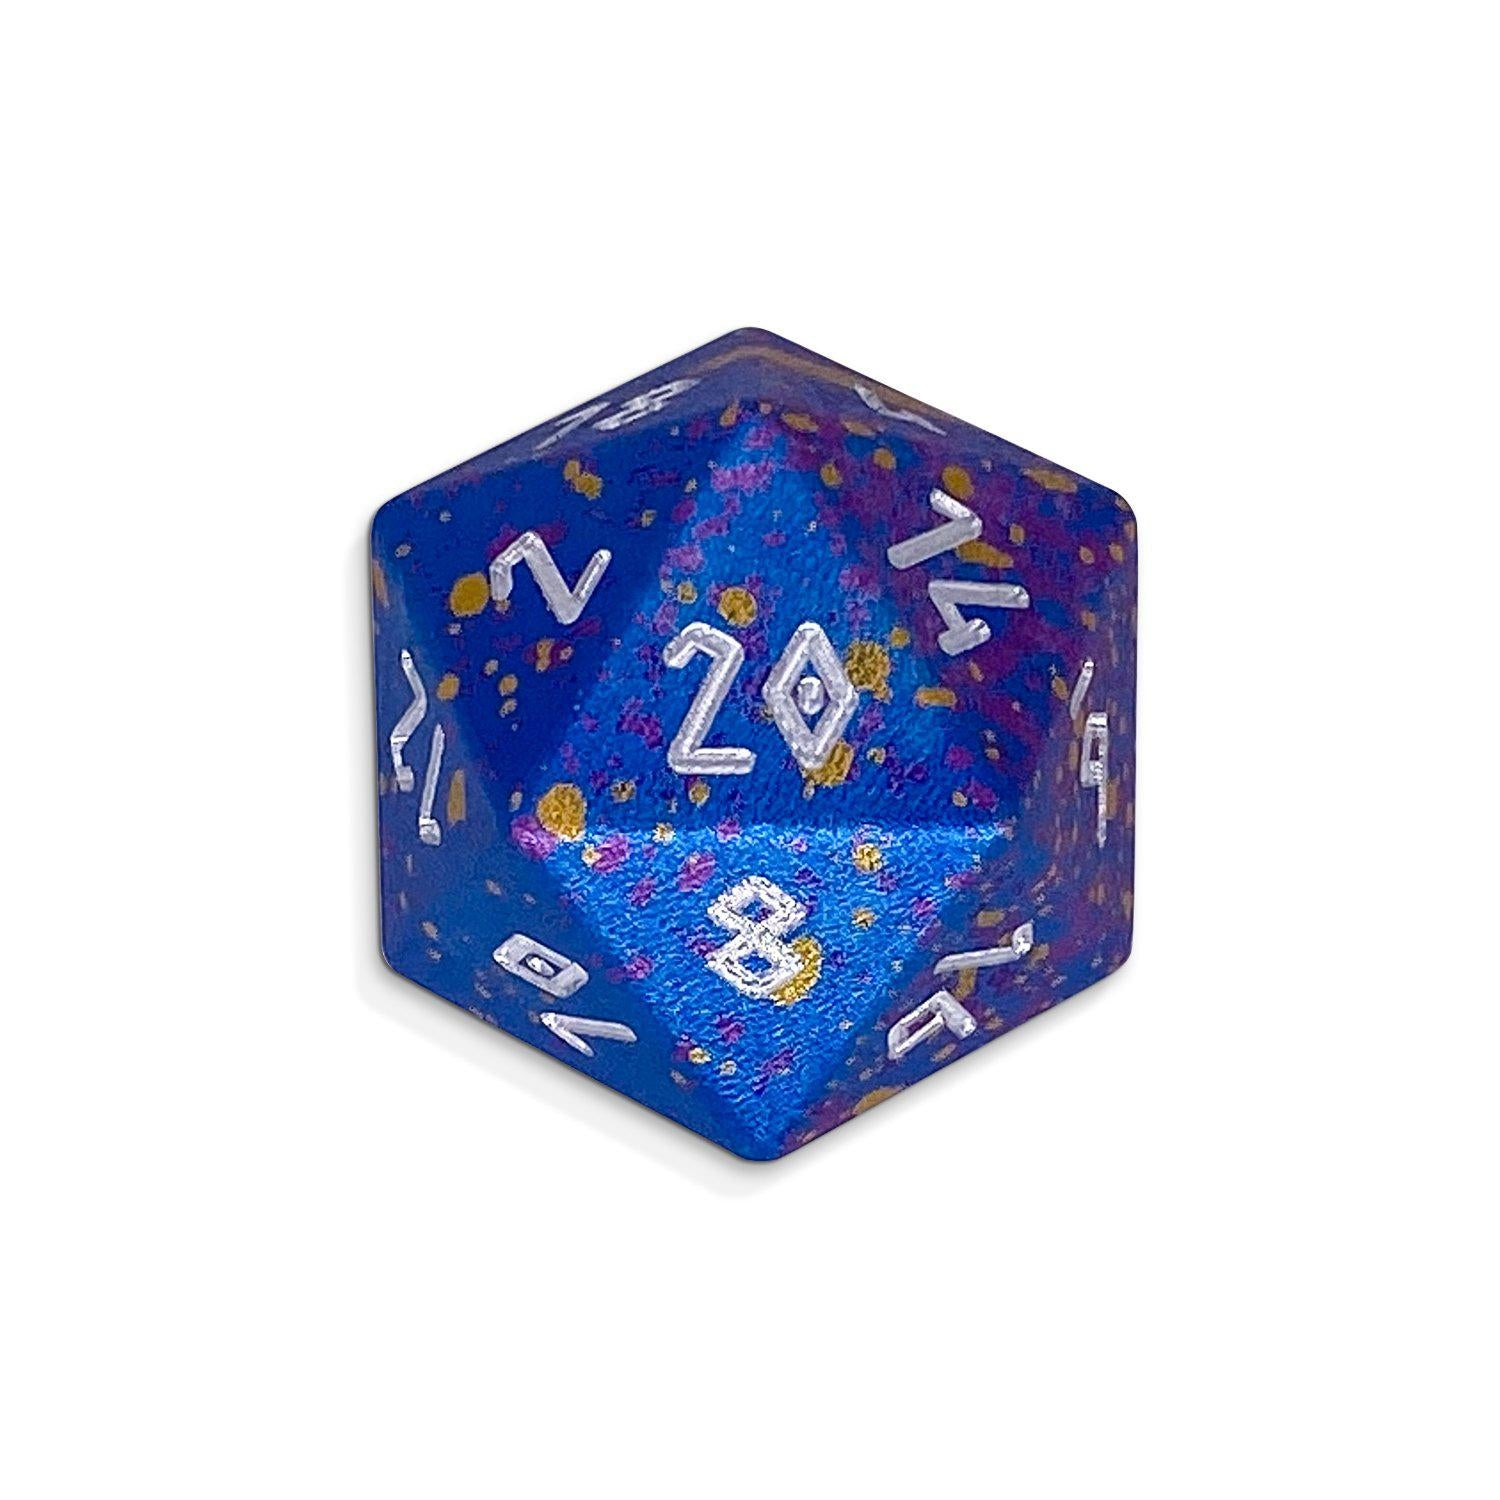 Single Wondrous Dice® D20 in Demon Queen by Norse Foundry 6063 Aircraft Grade Aluminum